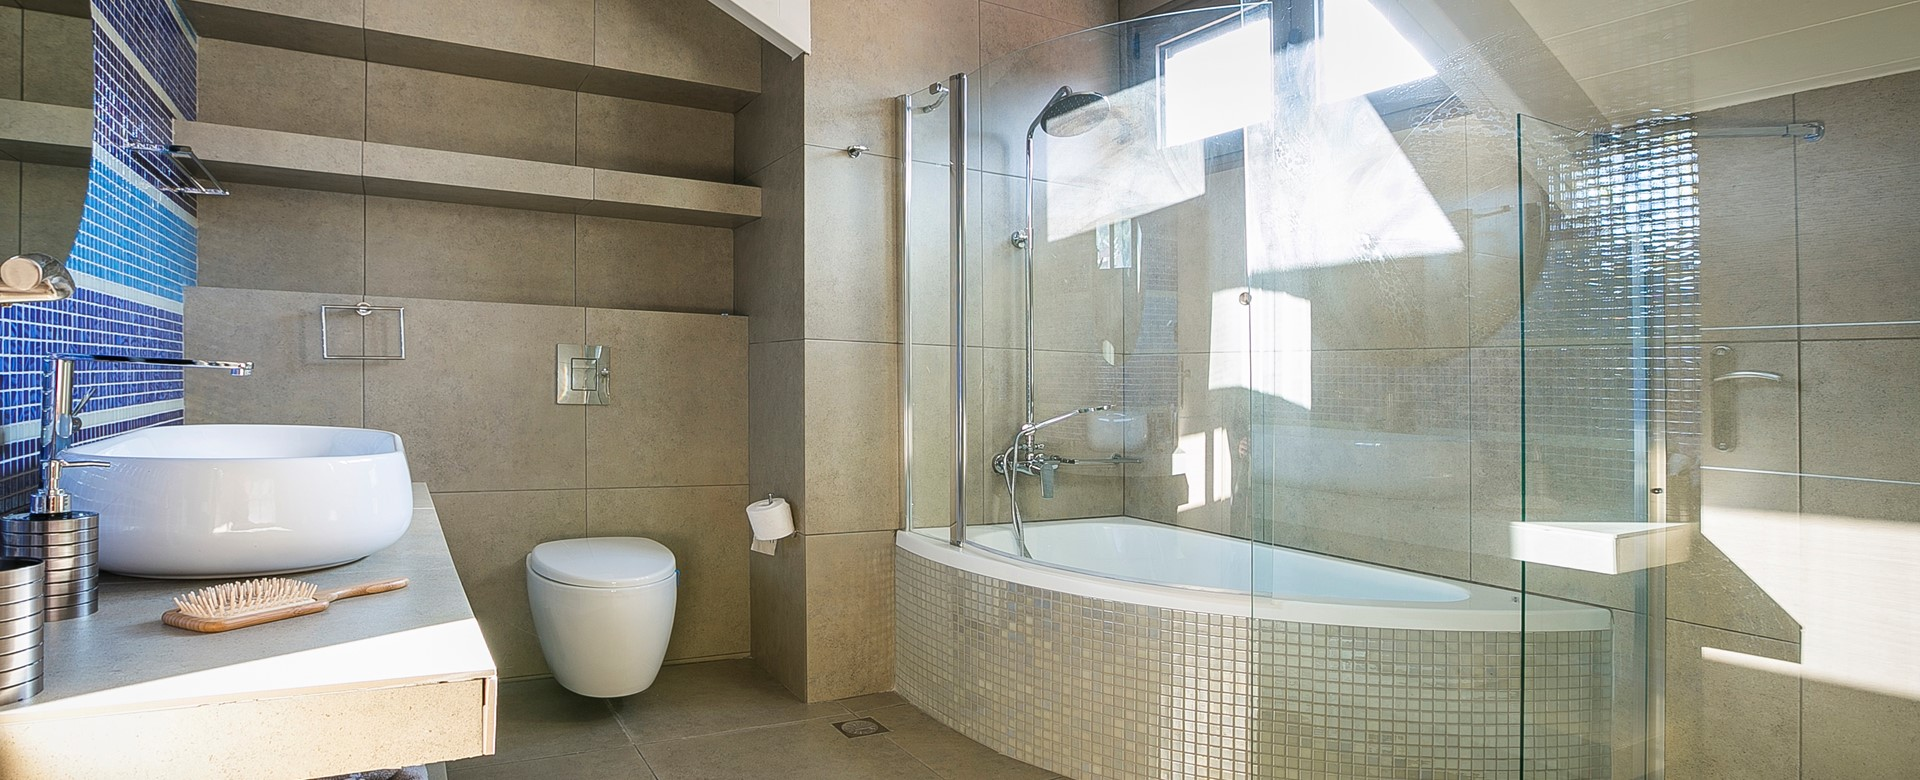 Corner bath with shower over and separate shower inside Marina Penthouse Apartment, Argostoli, Kefalonia, Greek Islands